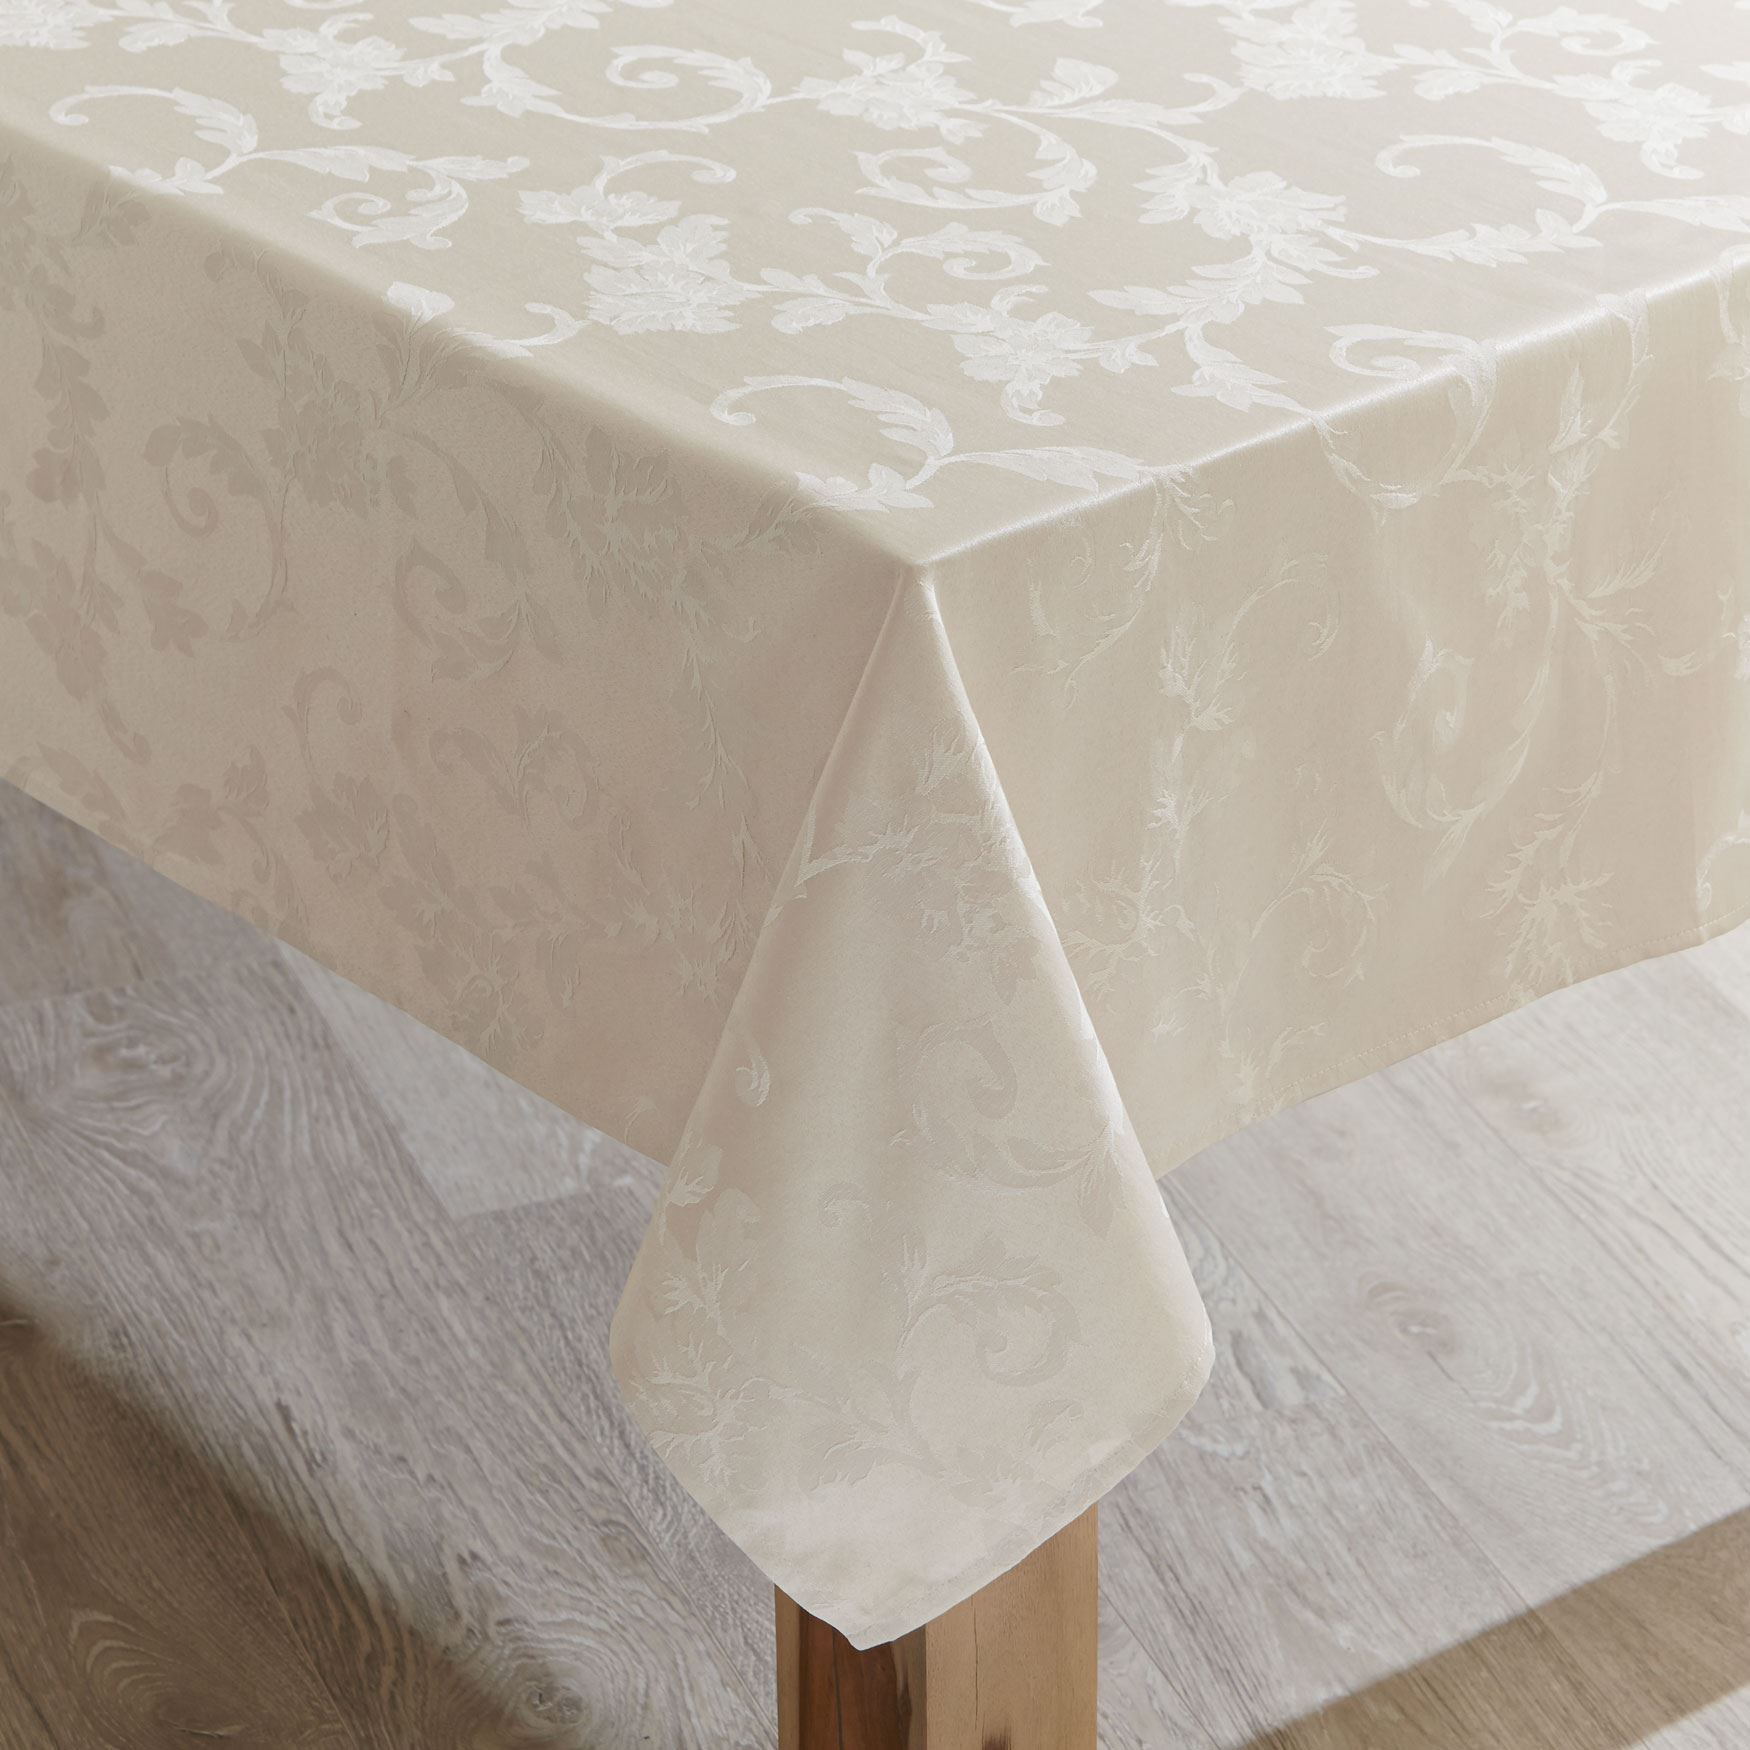 Grand Luxe Tablecloth Collection,